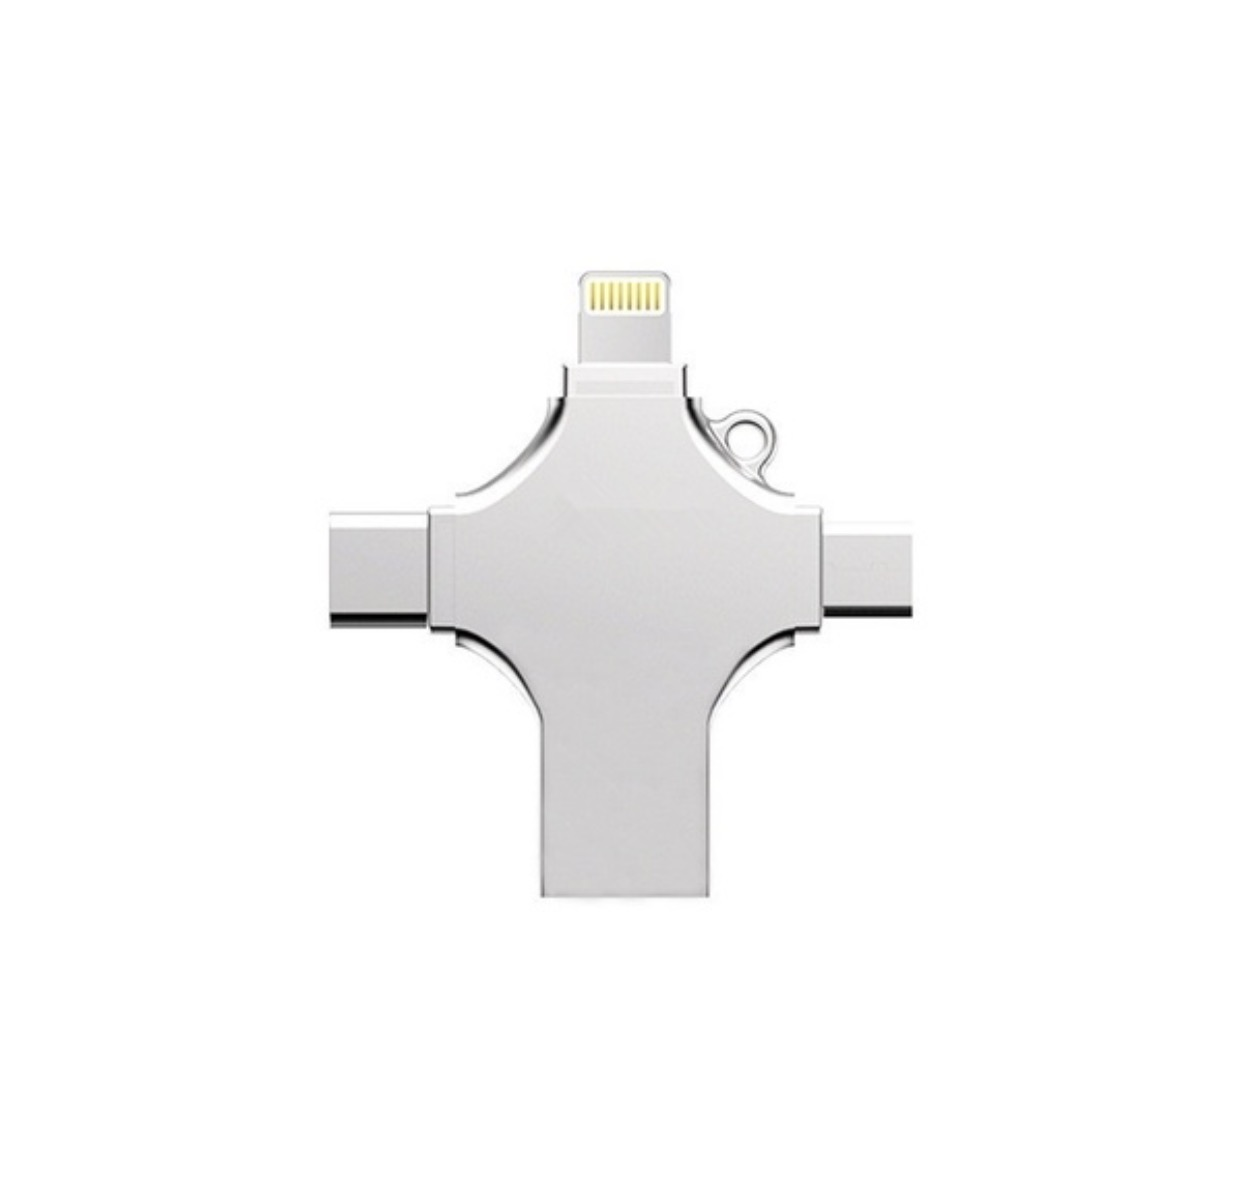 Outdoor micro usb flash drive otg adapter steel parts from china manufacturer